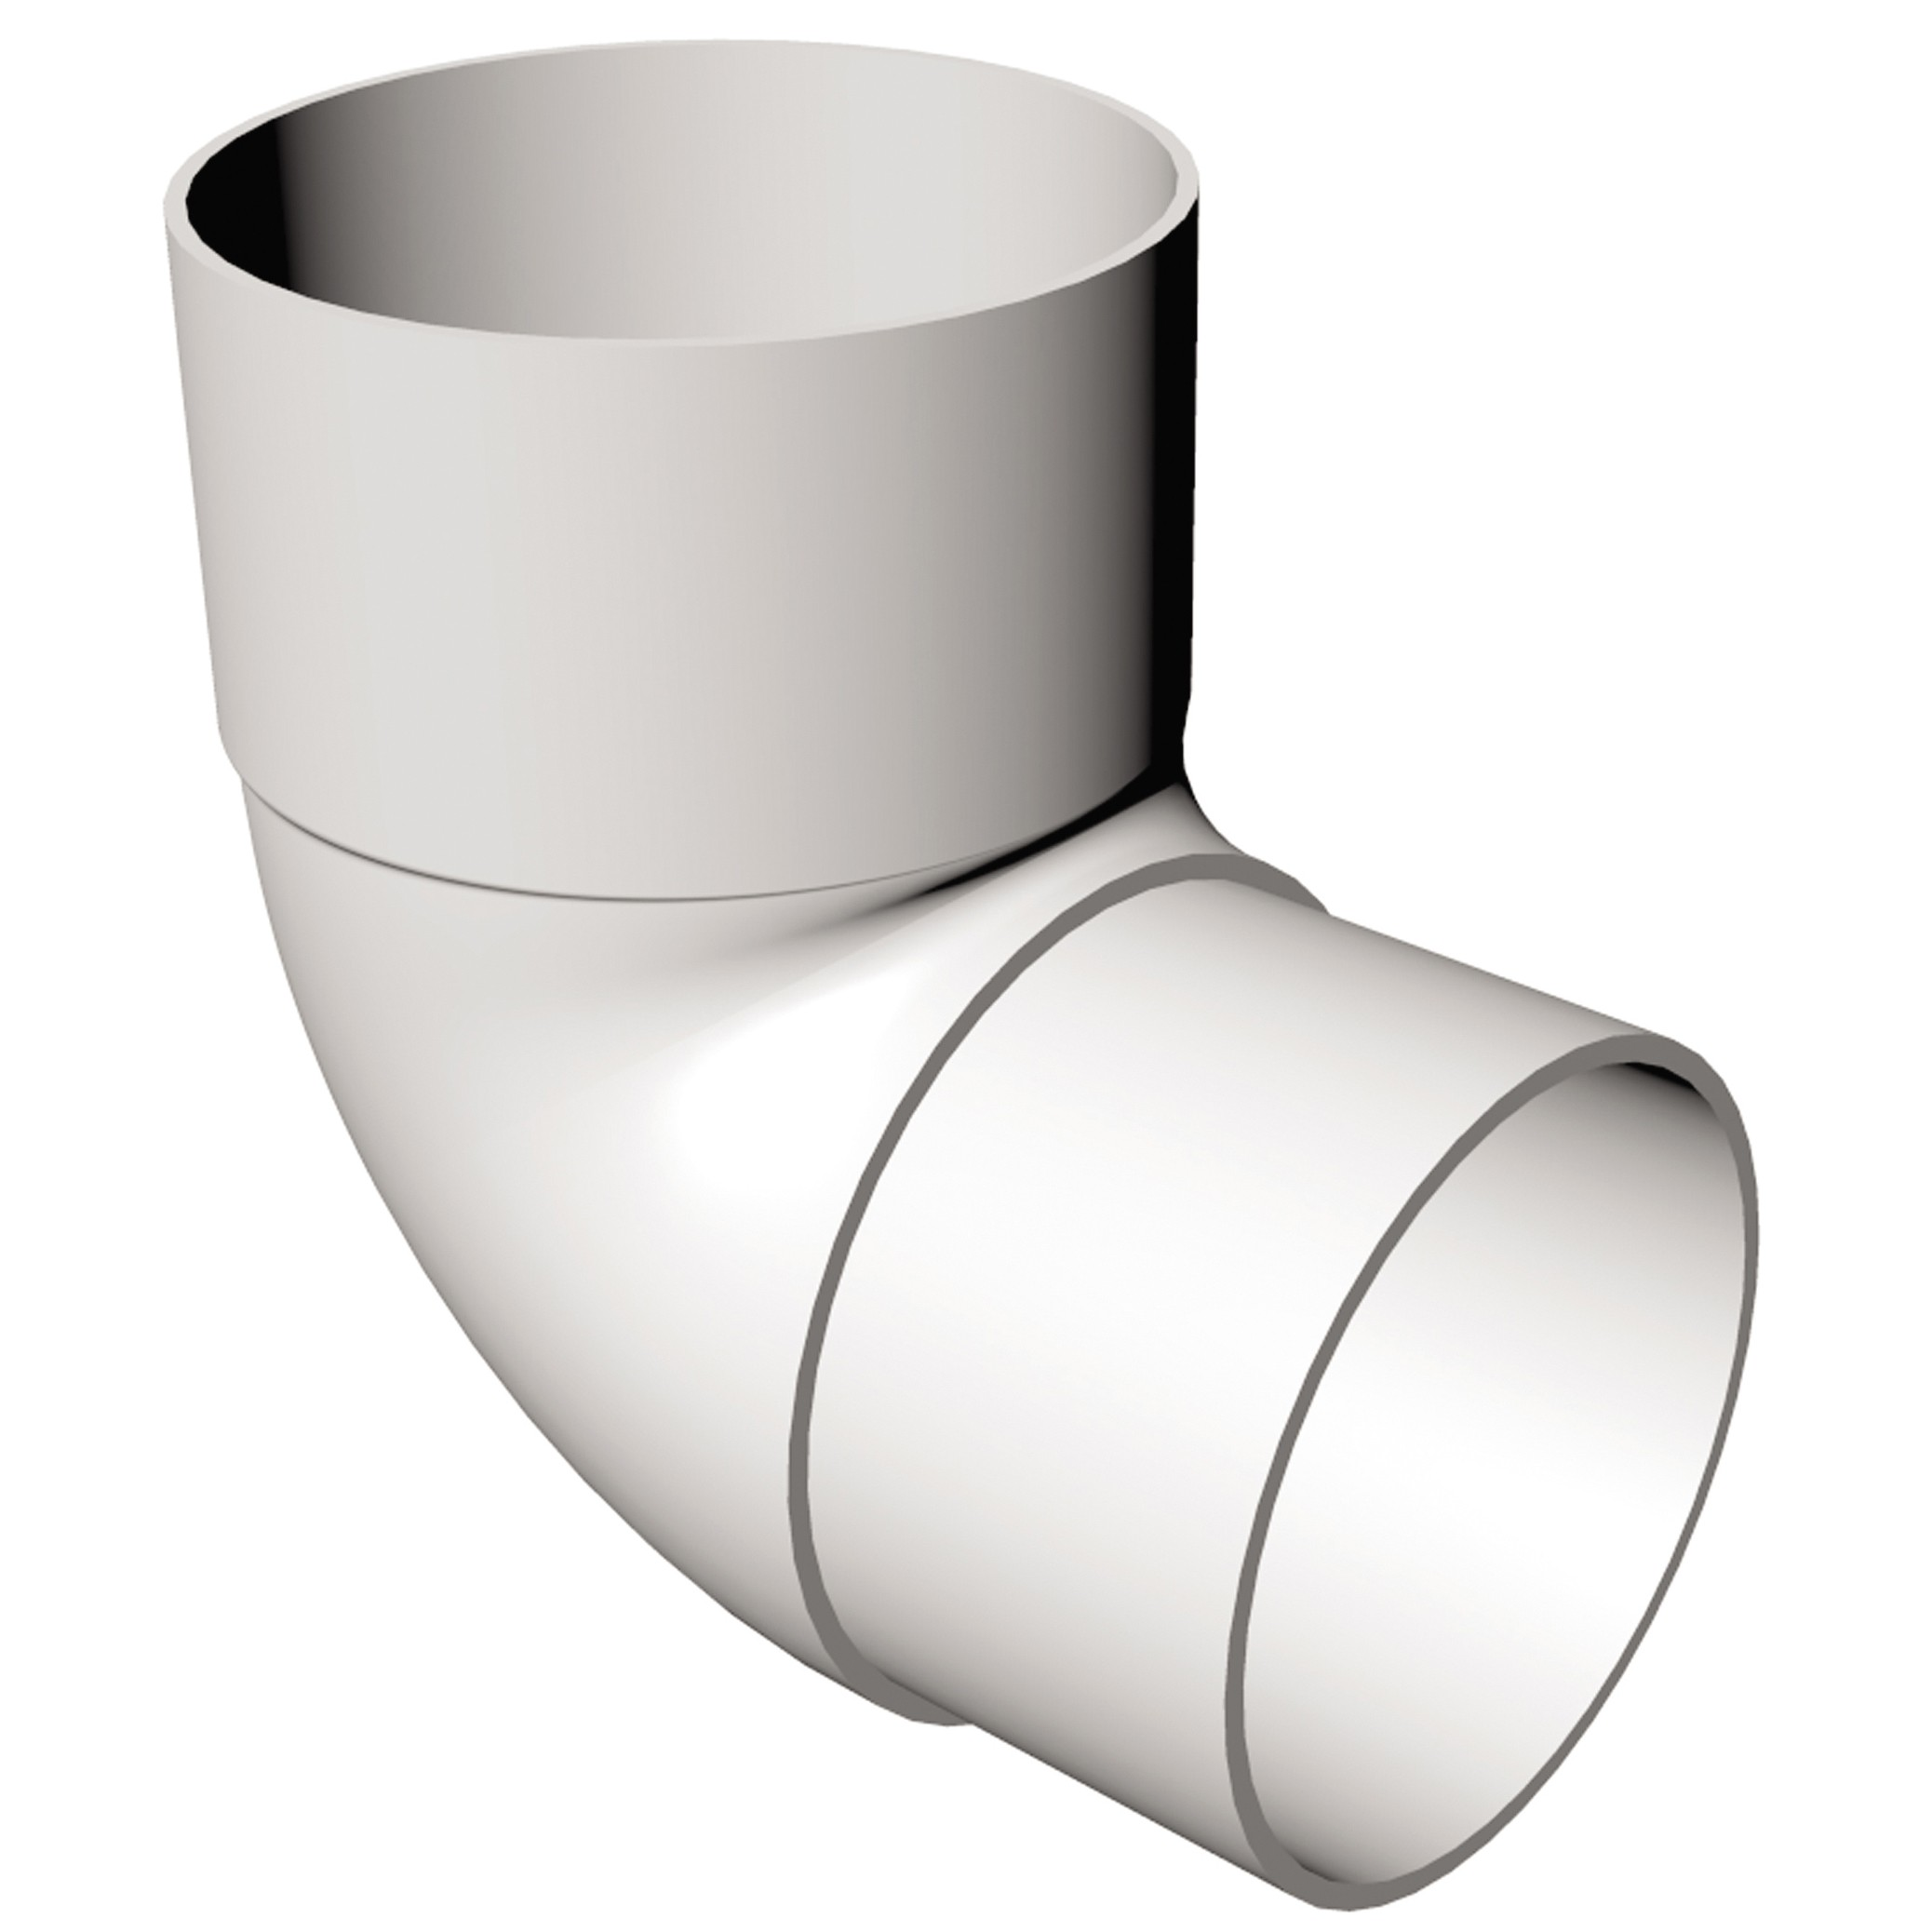 Freeflow 68mm Round Down Pipe 90 Degree Offset Bend - White